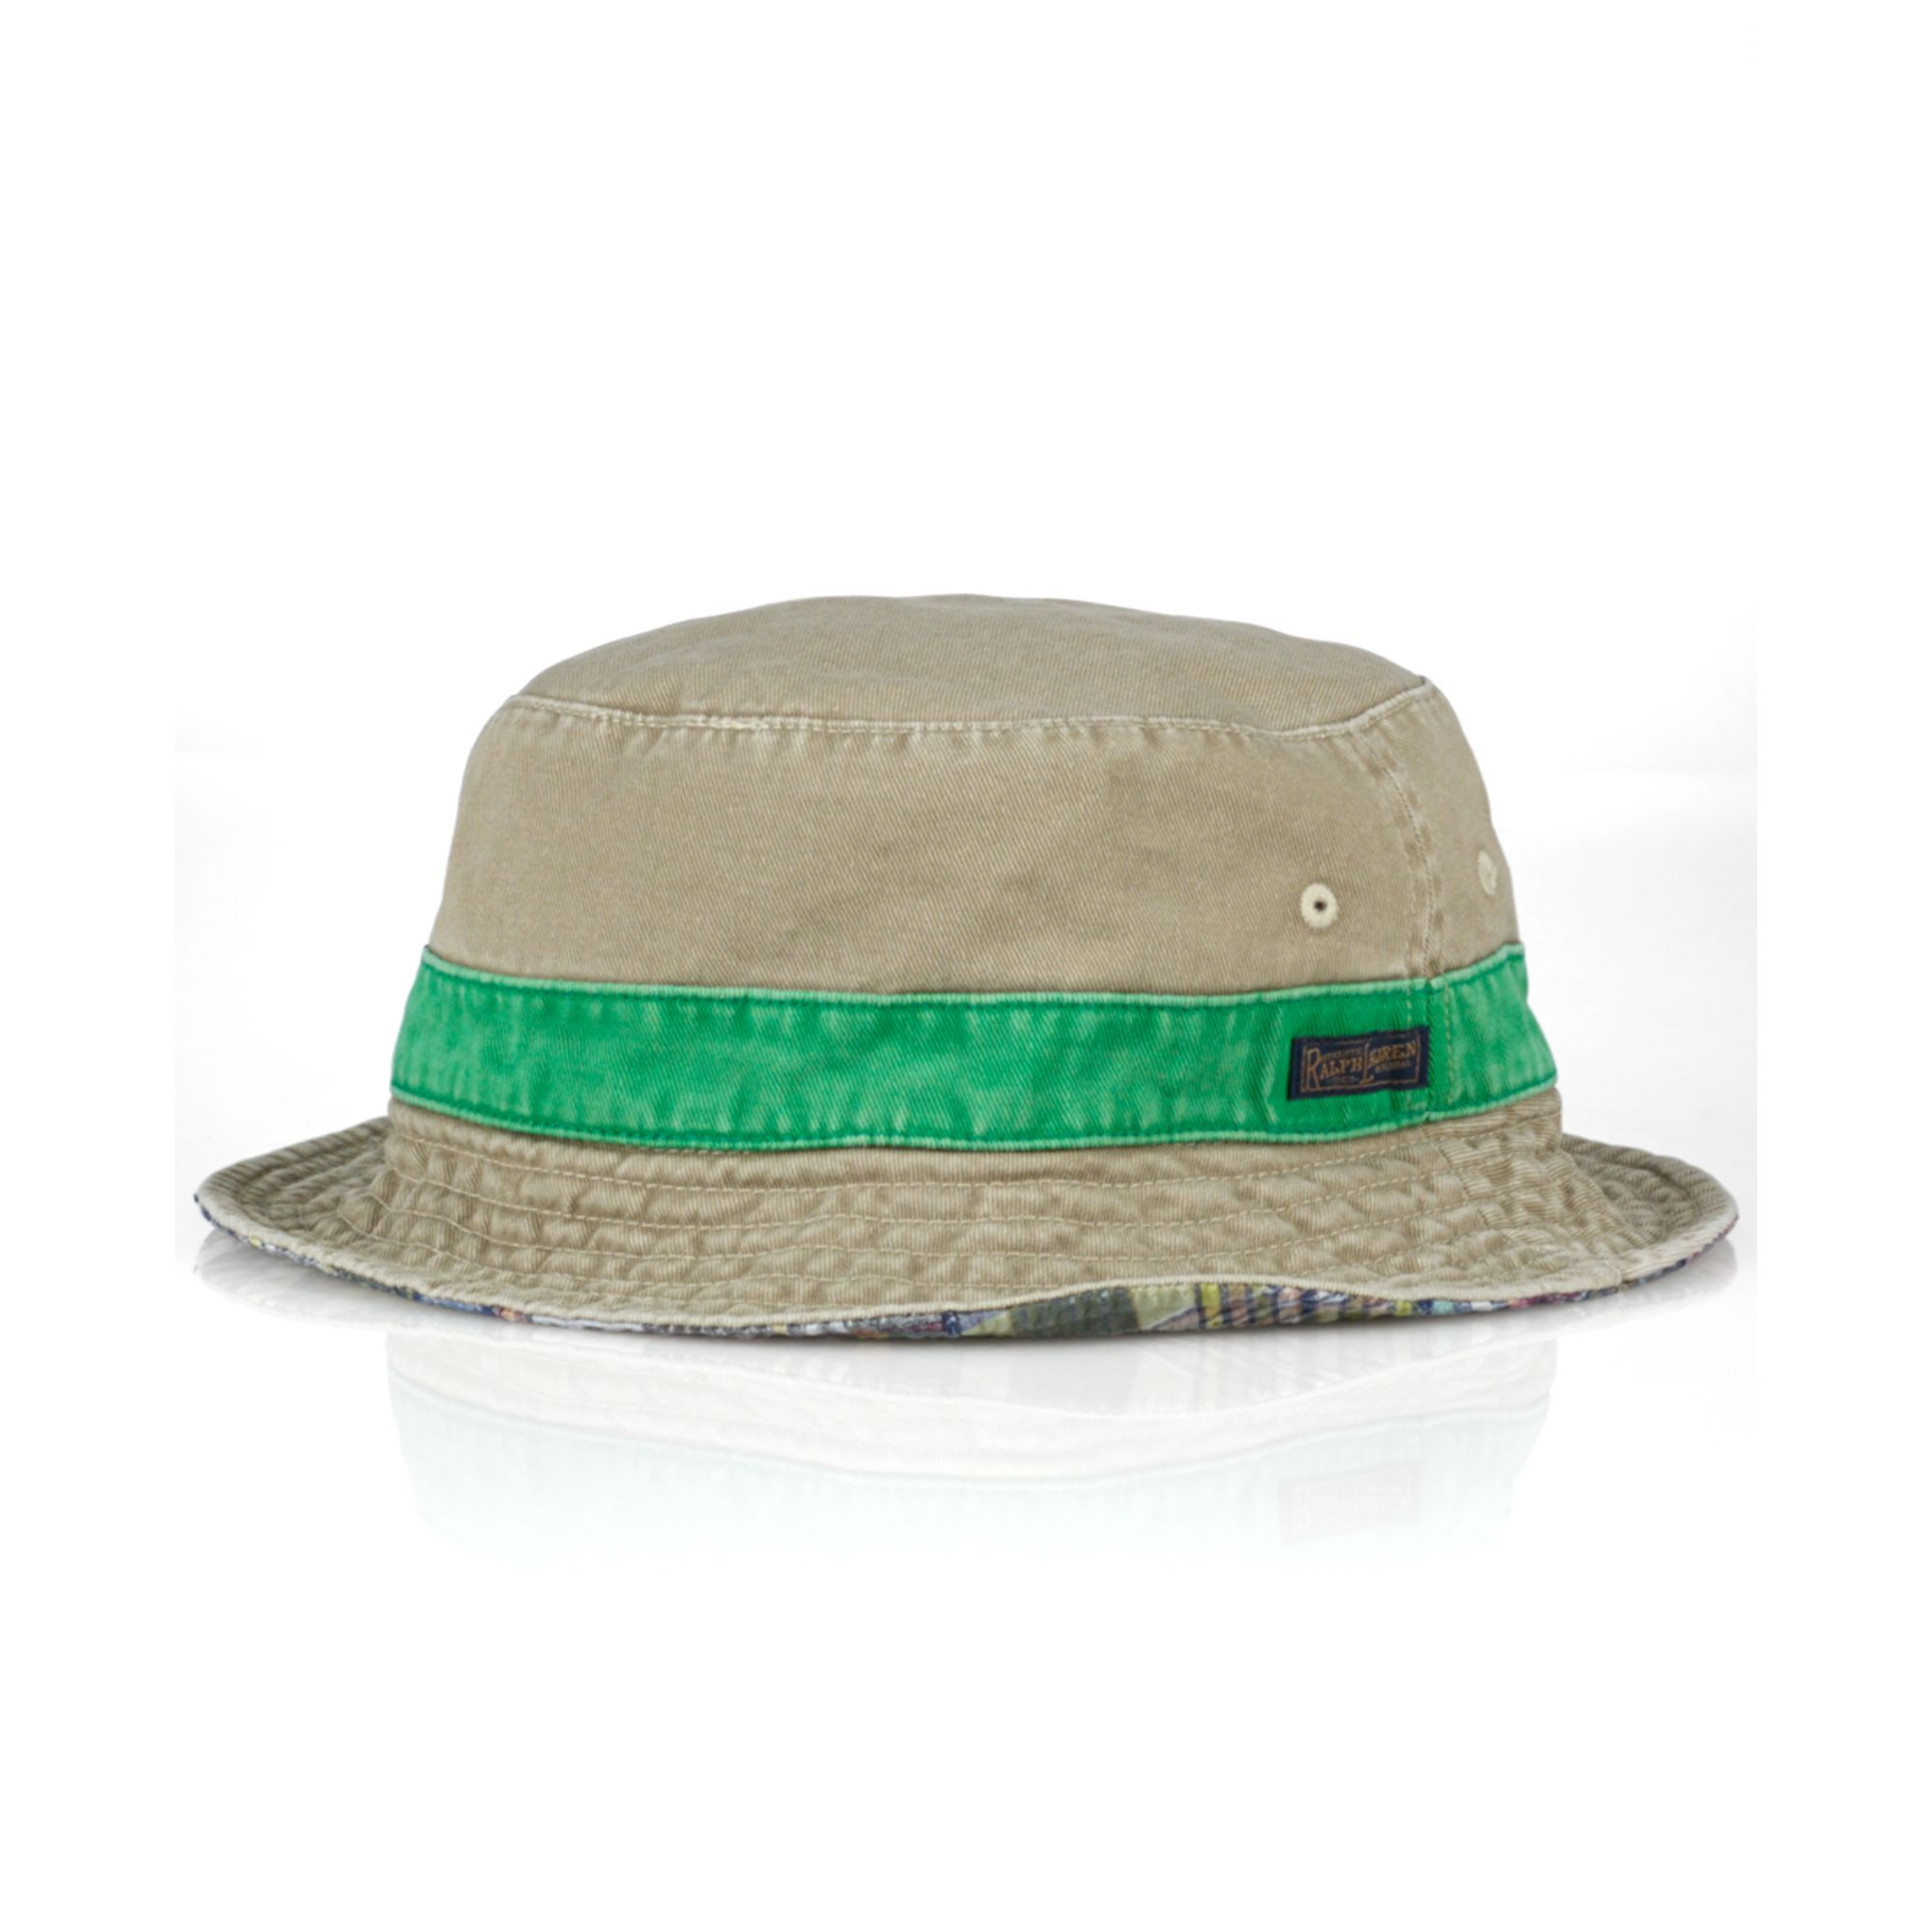 143d5c5590031 Ralph Lauren Polo Reversible Twillandmadras Bucket Hat in Natural ...